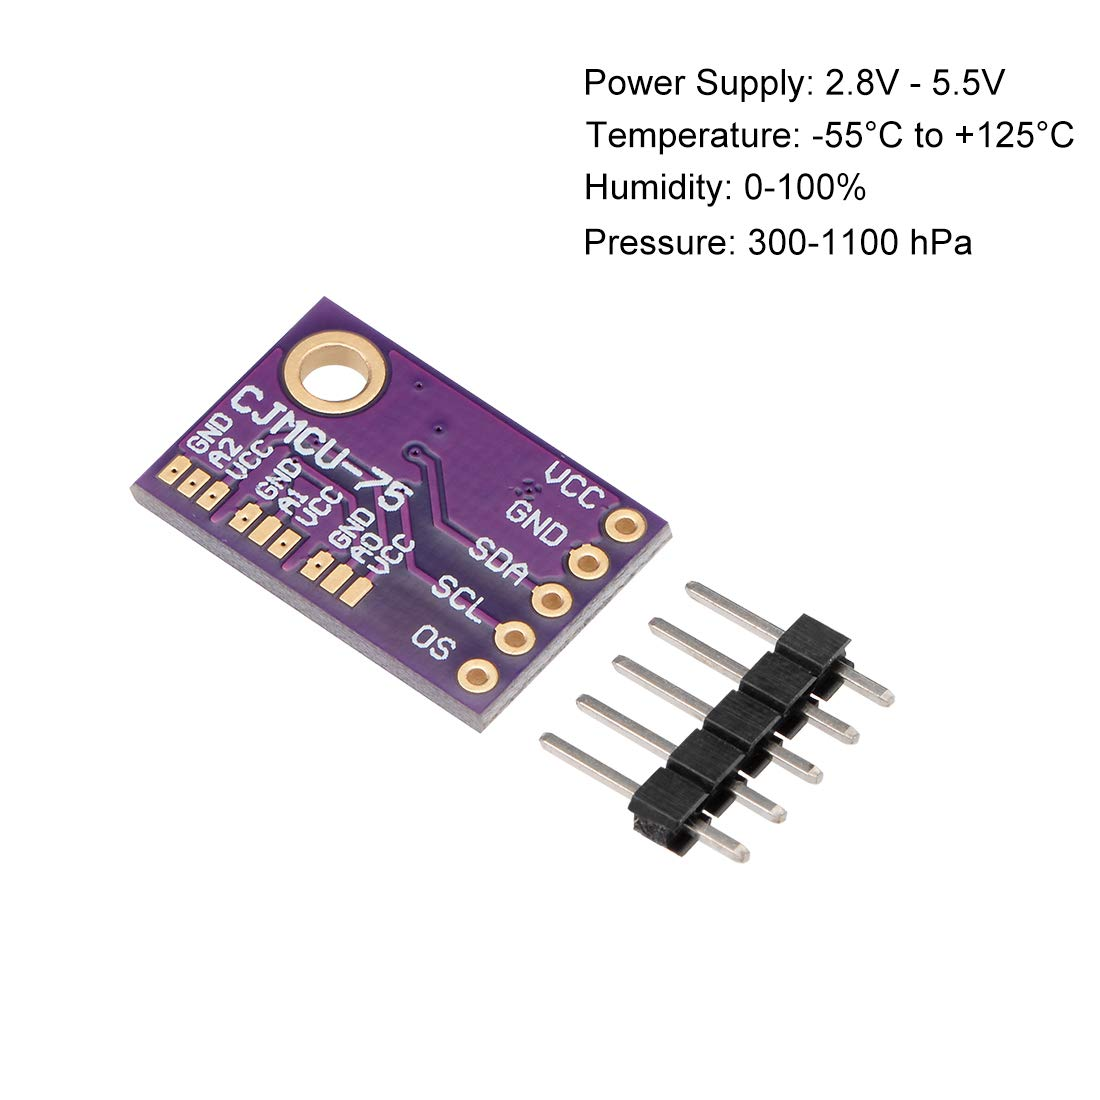 uxcell LM75A Pressure Temperature Sensor Module Digital Breakout Humidity Sensor with IIC I2c for Arduino 2 Pack